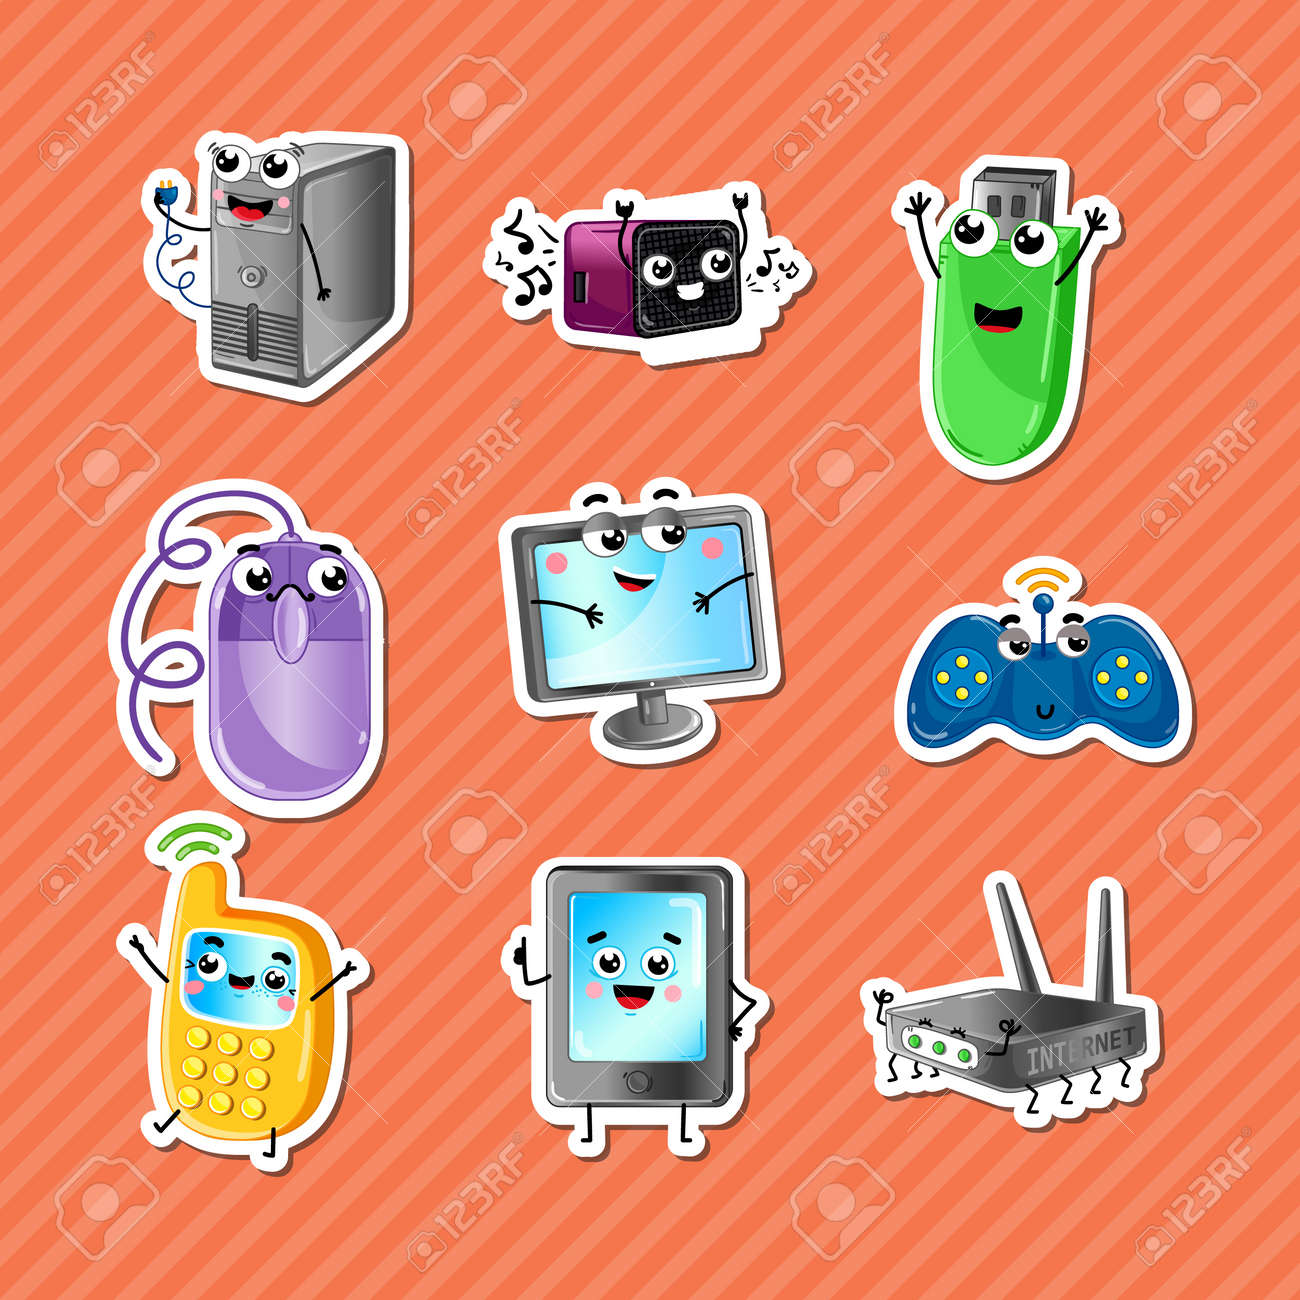 Funny computer gadgets cartoon characters set monitor wi fi funny computer gadgets cartoon characters set monitor wi fi router mobile phone greentooth Image collections